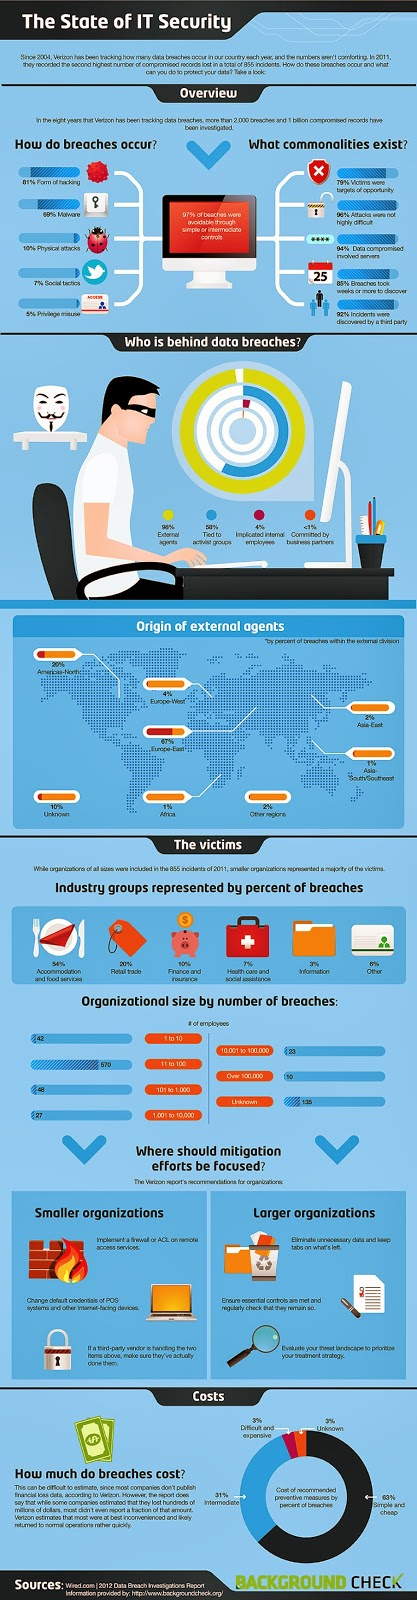 http://www.hongkiat.com/blog/state-of-it-security-infographic/